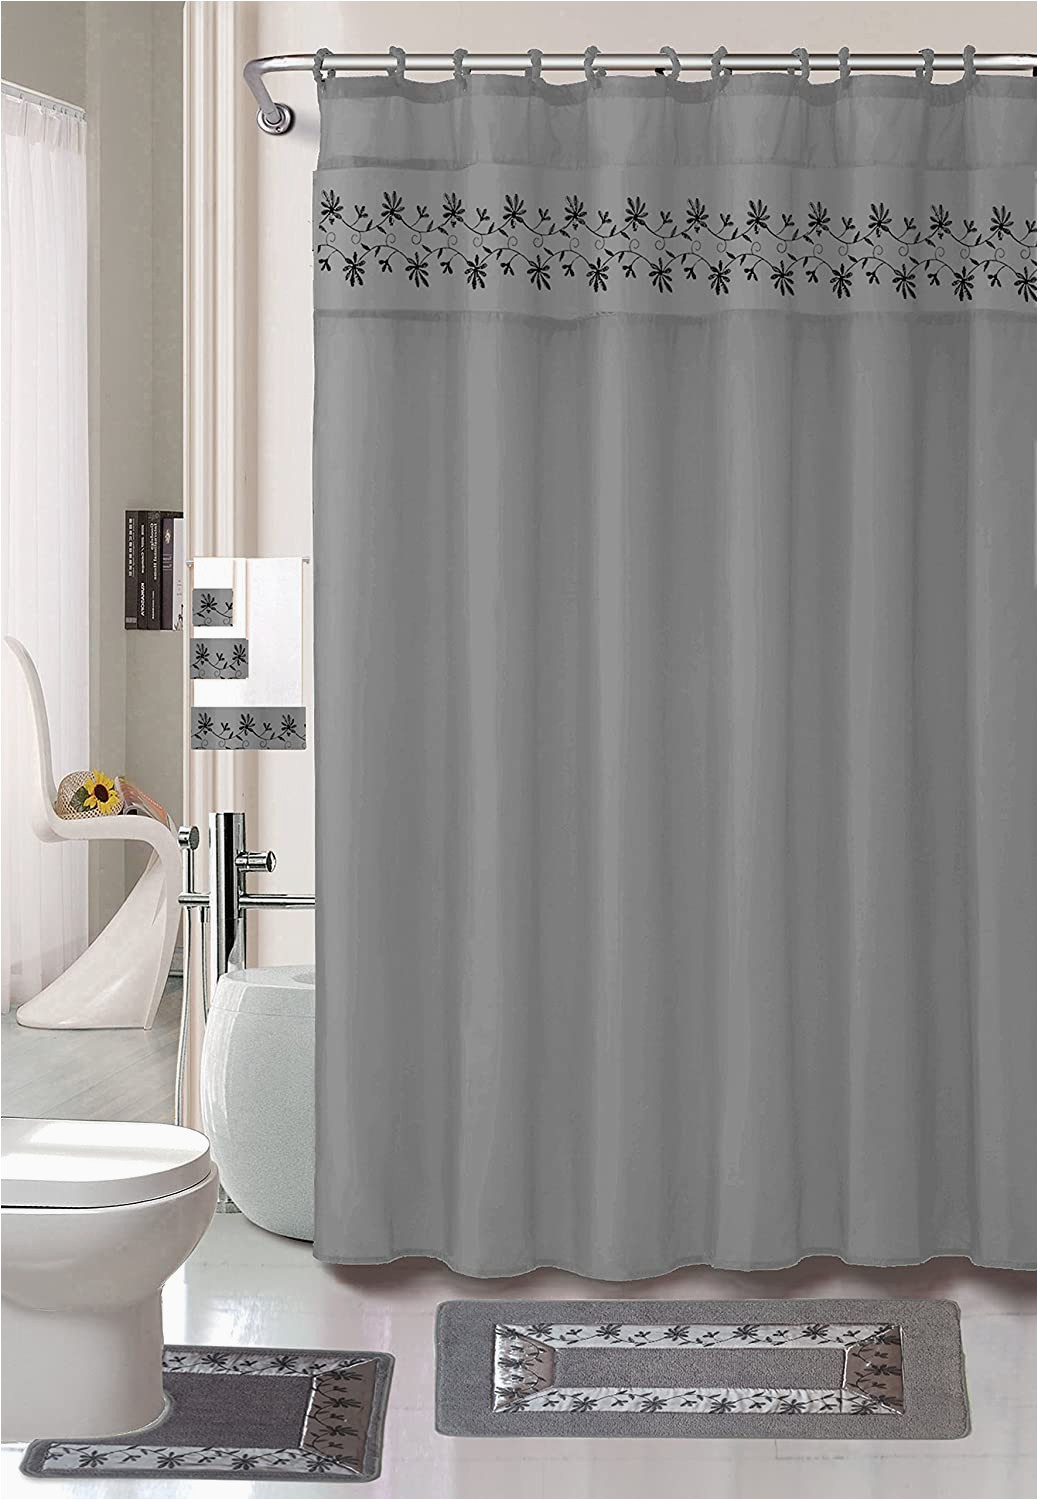 Luxury Bath Rugs and towels Luxury Home Collection 18 Pc Bath Rug Set Embroidery Non Slip Bathroom Rug Mats and Rug Contour and Shower Curtain and towels and Rings Hooks and